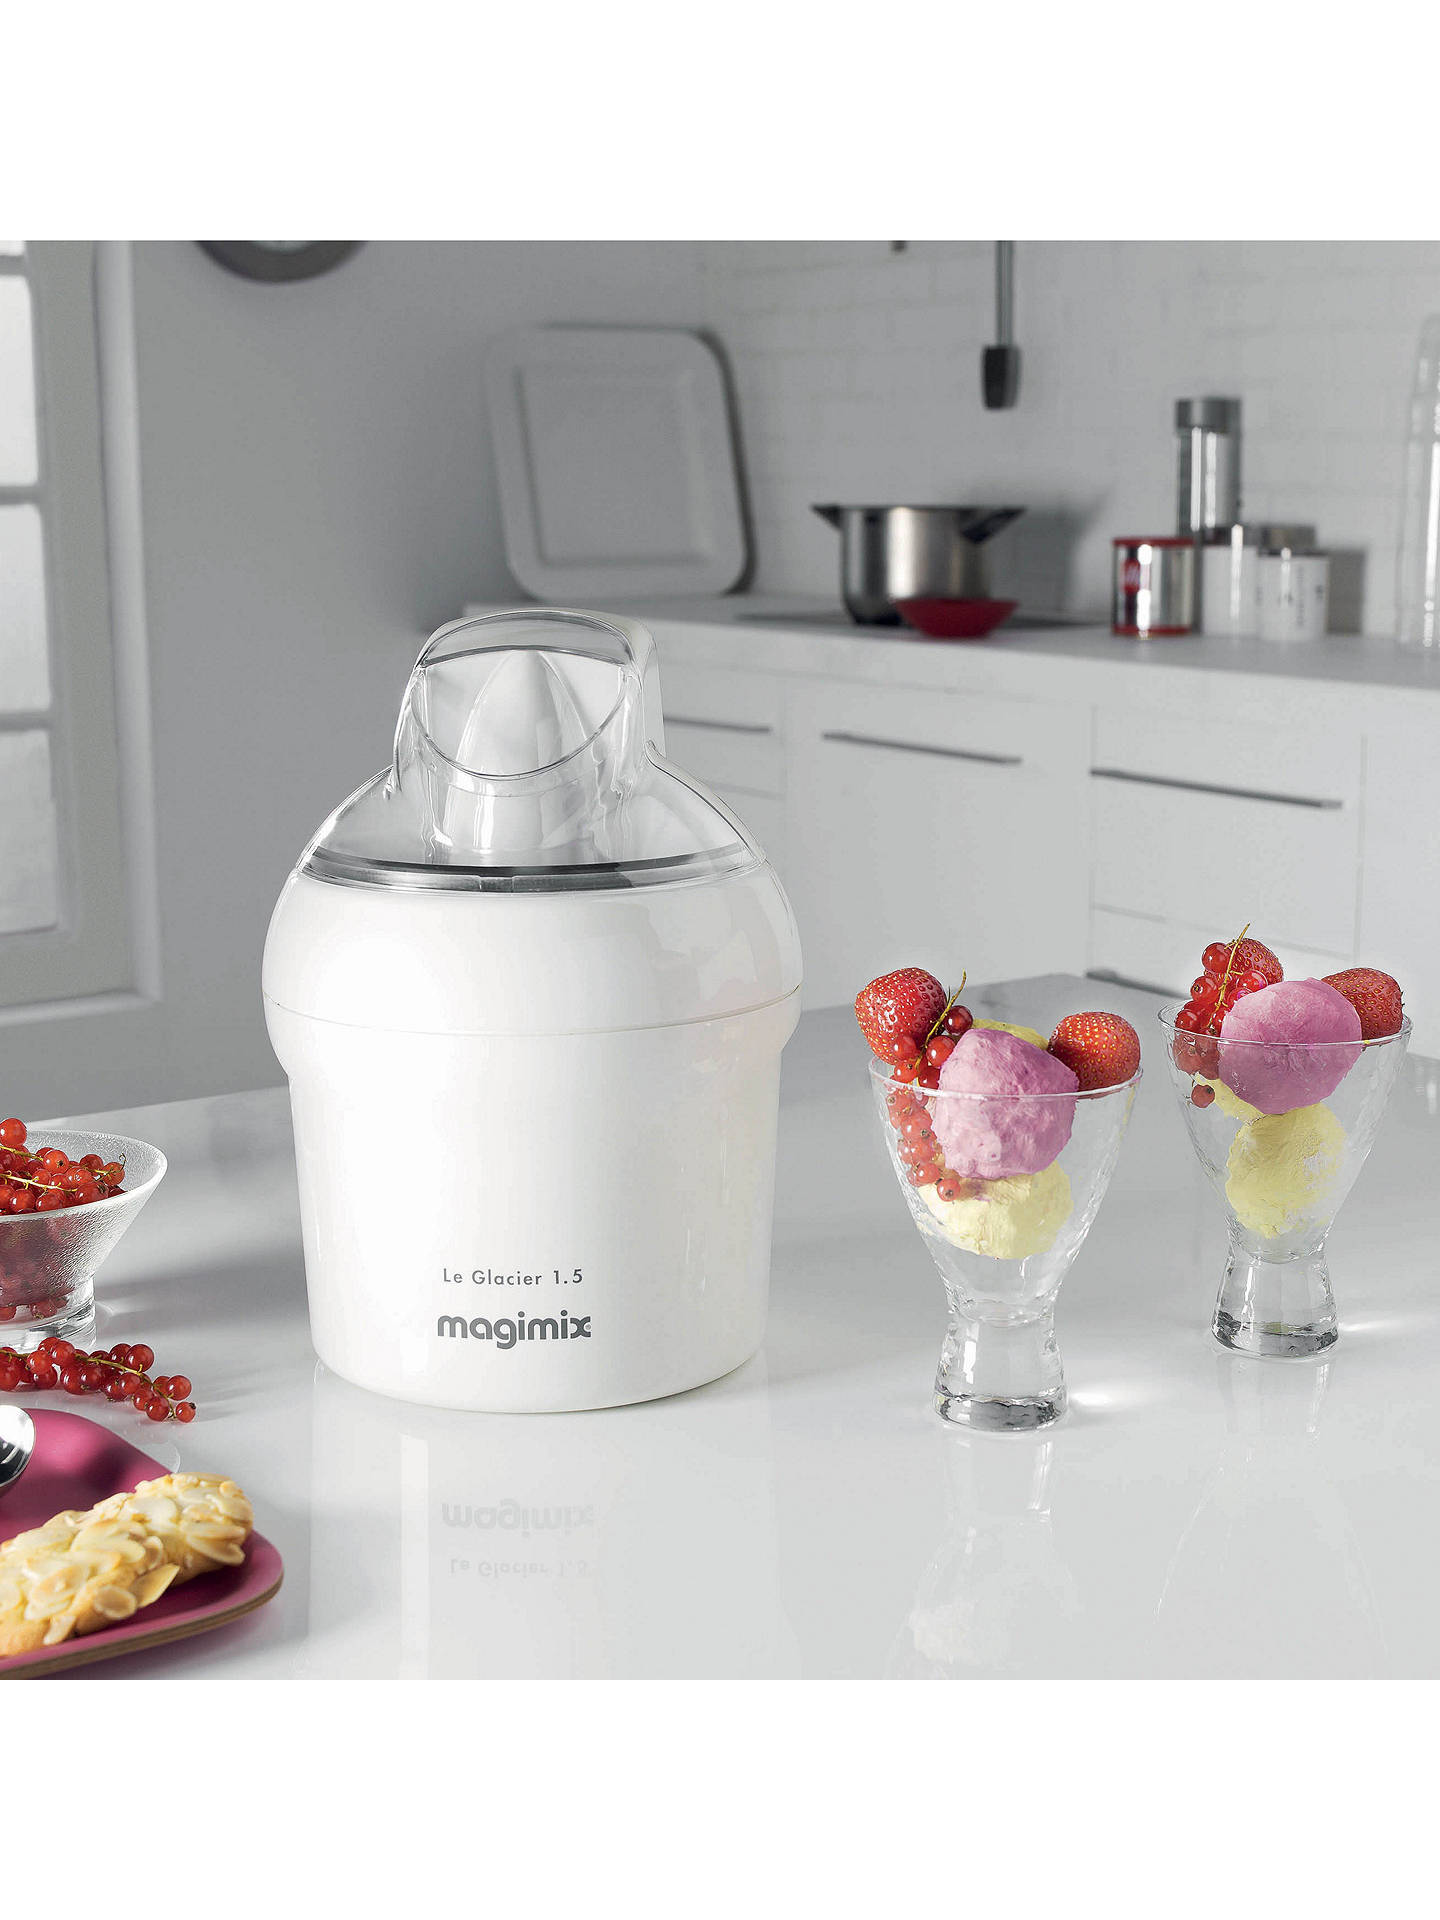 Buy Magimix Ice Cream Maker, 11047 Le Glacier 1.1, White Online at johnlewis.com